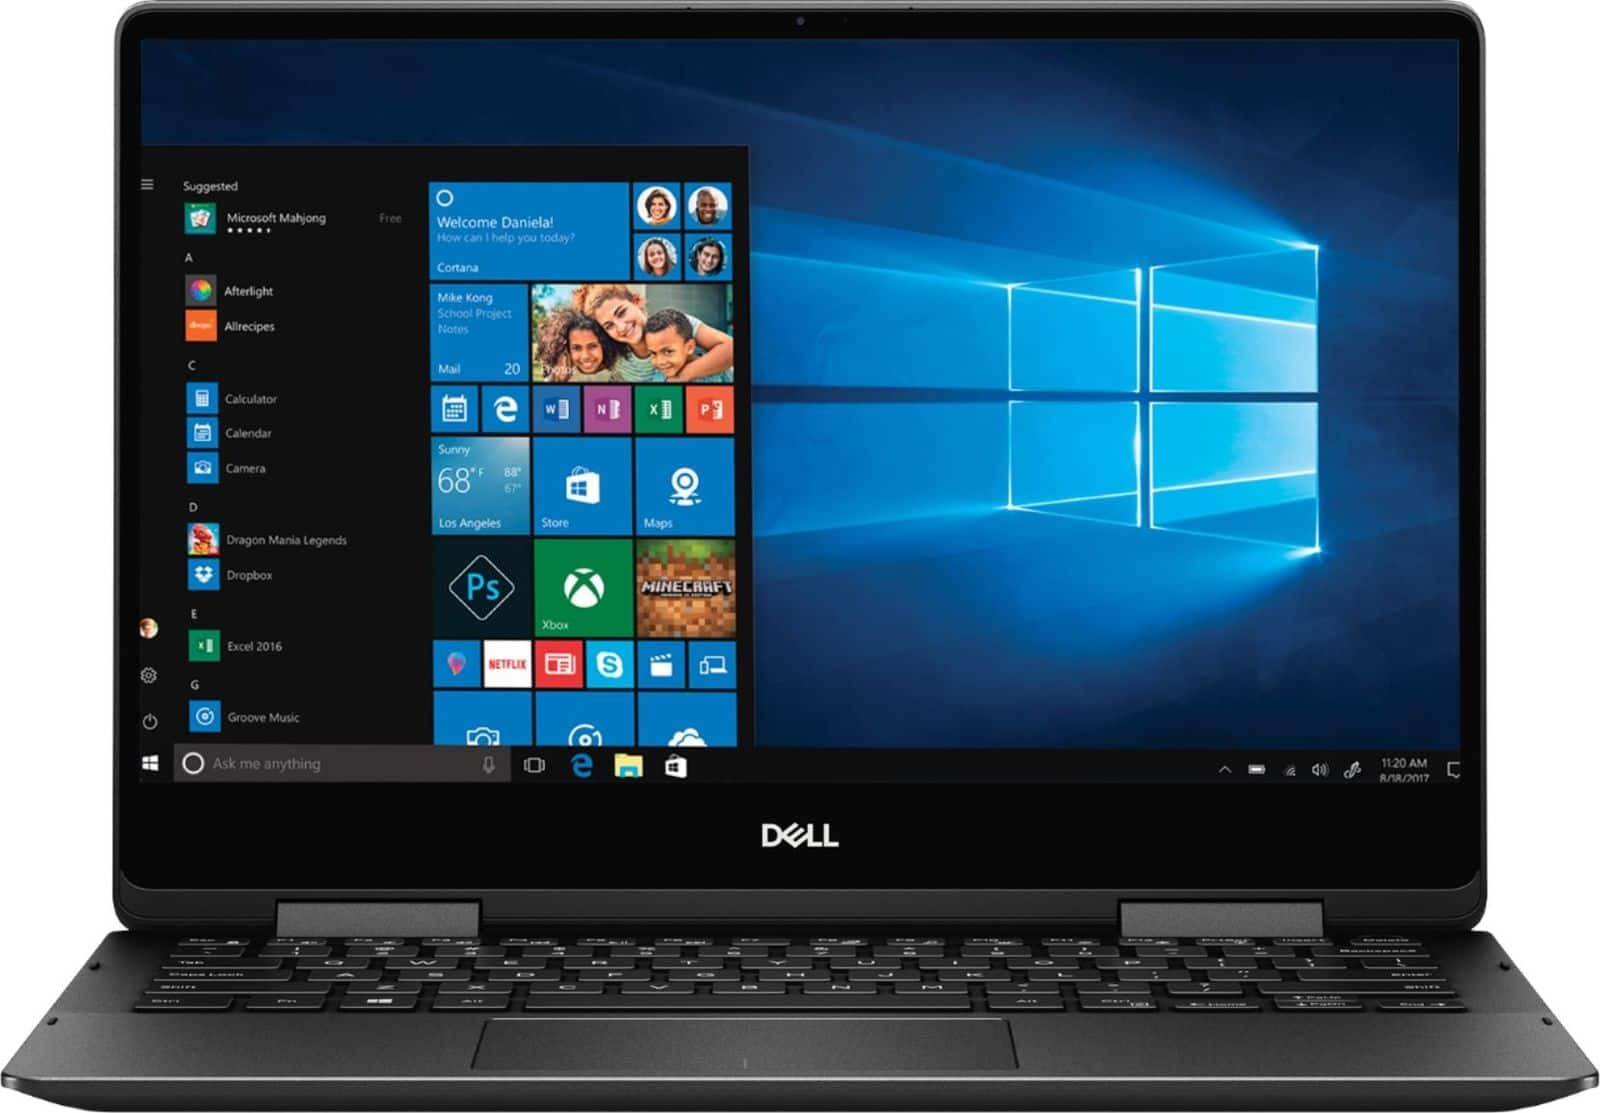 "Dell Inspiron 7000 2-in-1 Laptop: Intel Core i7-8565U, 13.3"" 4K IPS Touchscreen, 16GB DDR4, 256GB SSD, Type-C, Win 10 $799.99 + Free Shipping @ Best Buy"